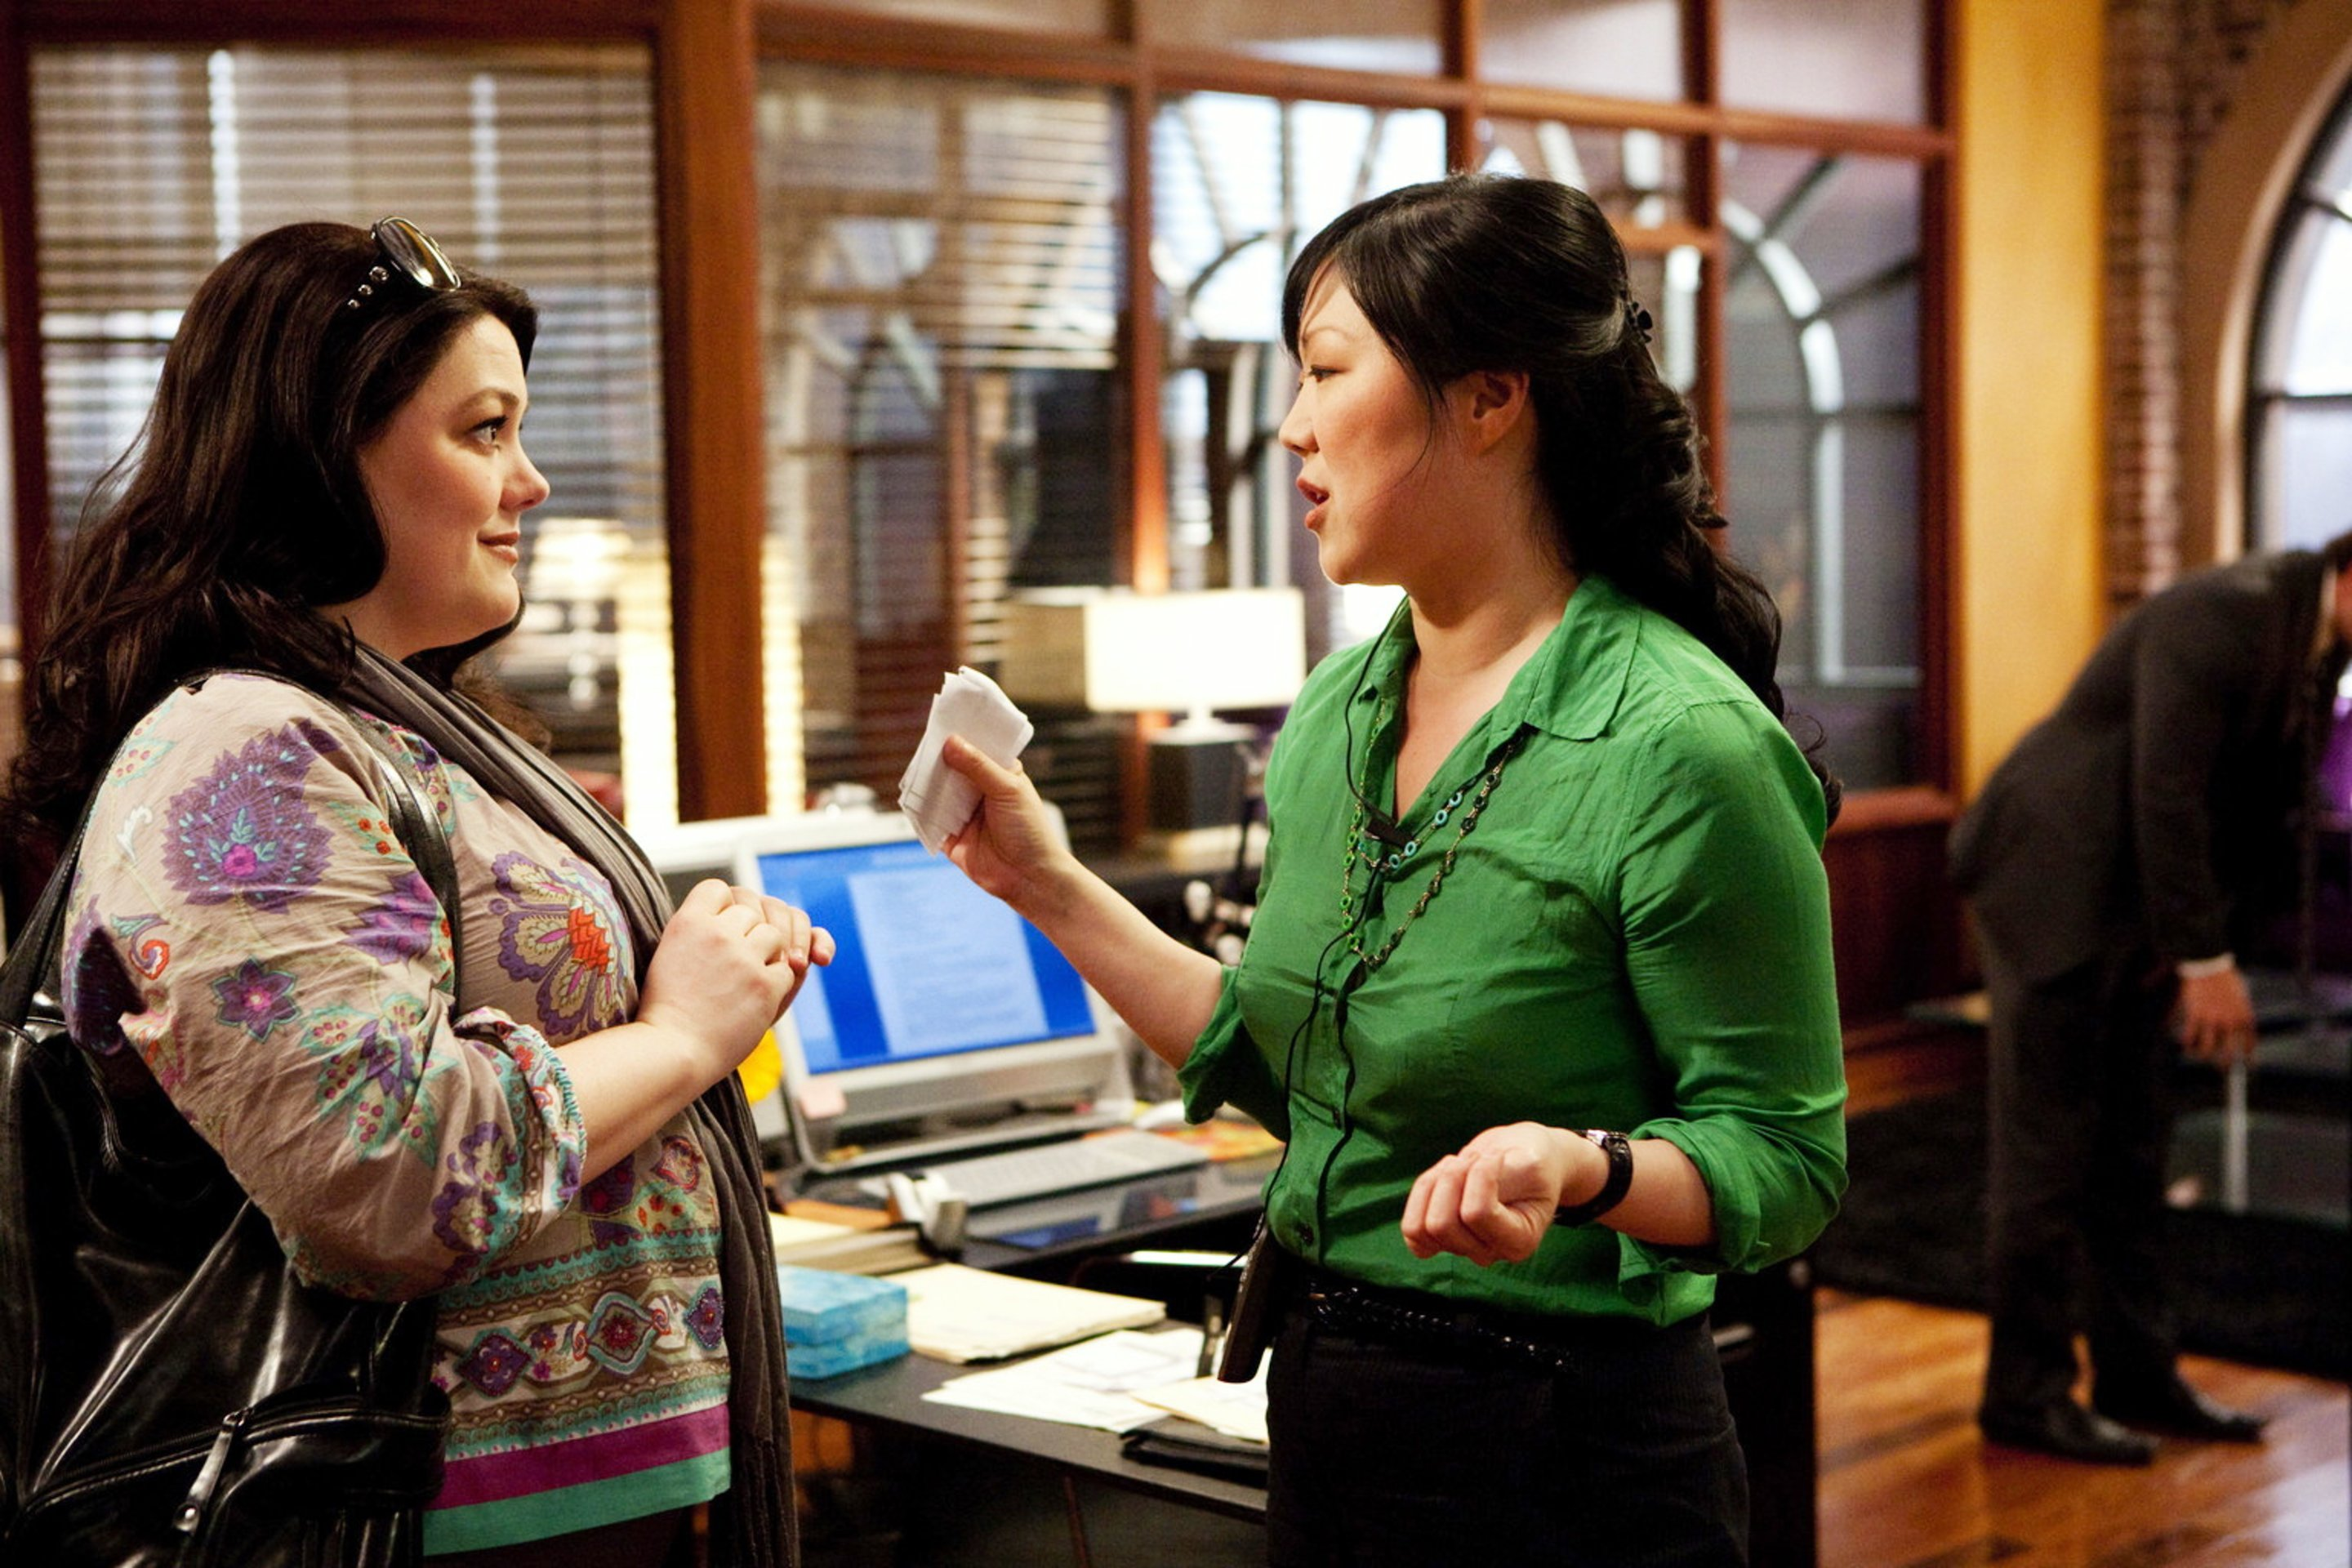 An analysis of im the one that i want by margaret cho